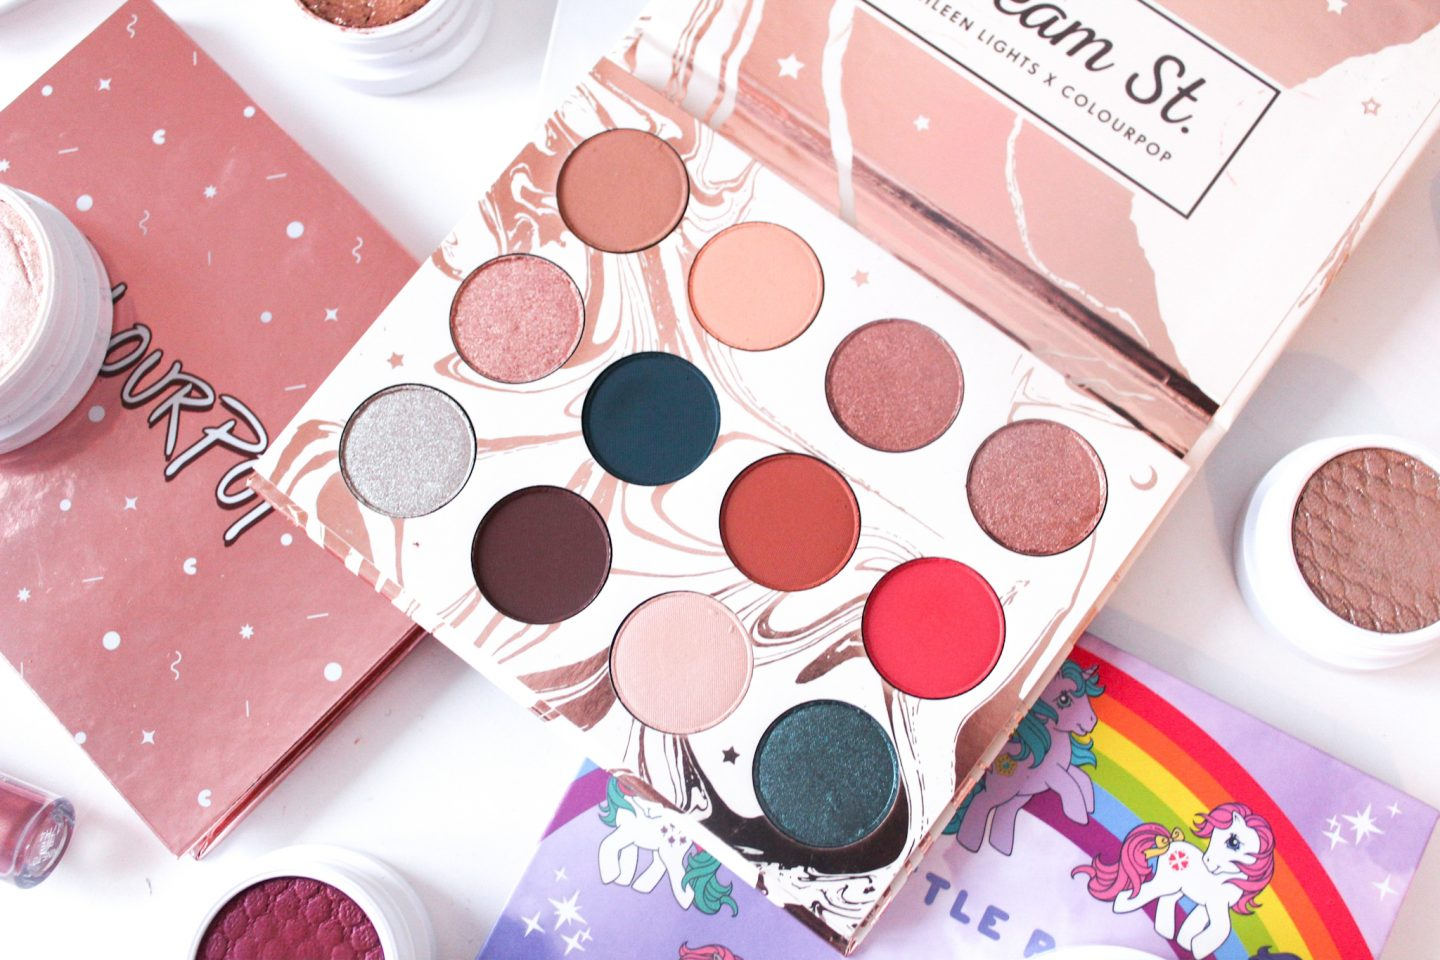 Kathleen Lights X Colourpop | Dream St. Shadow Palette